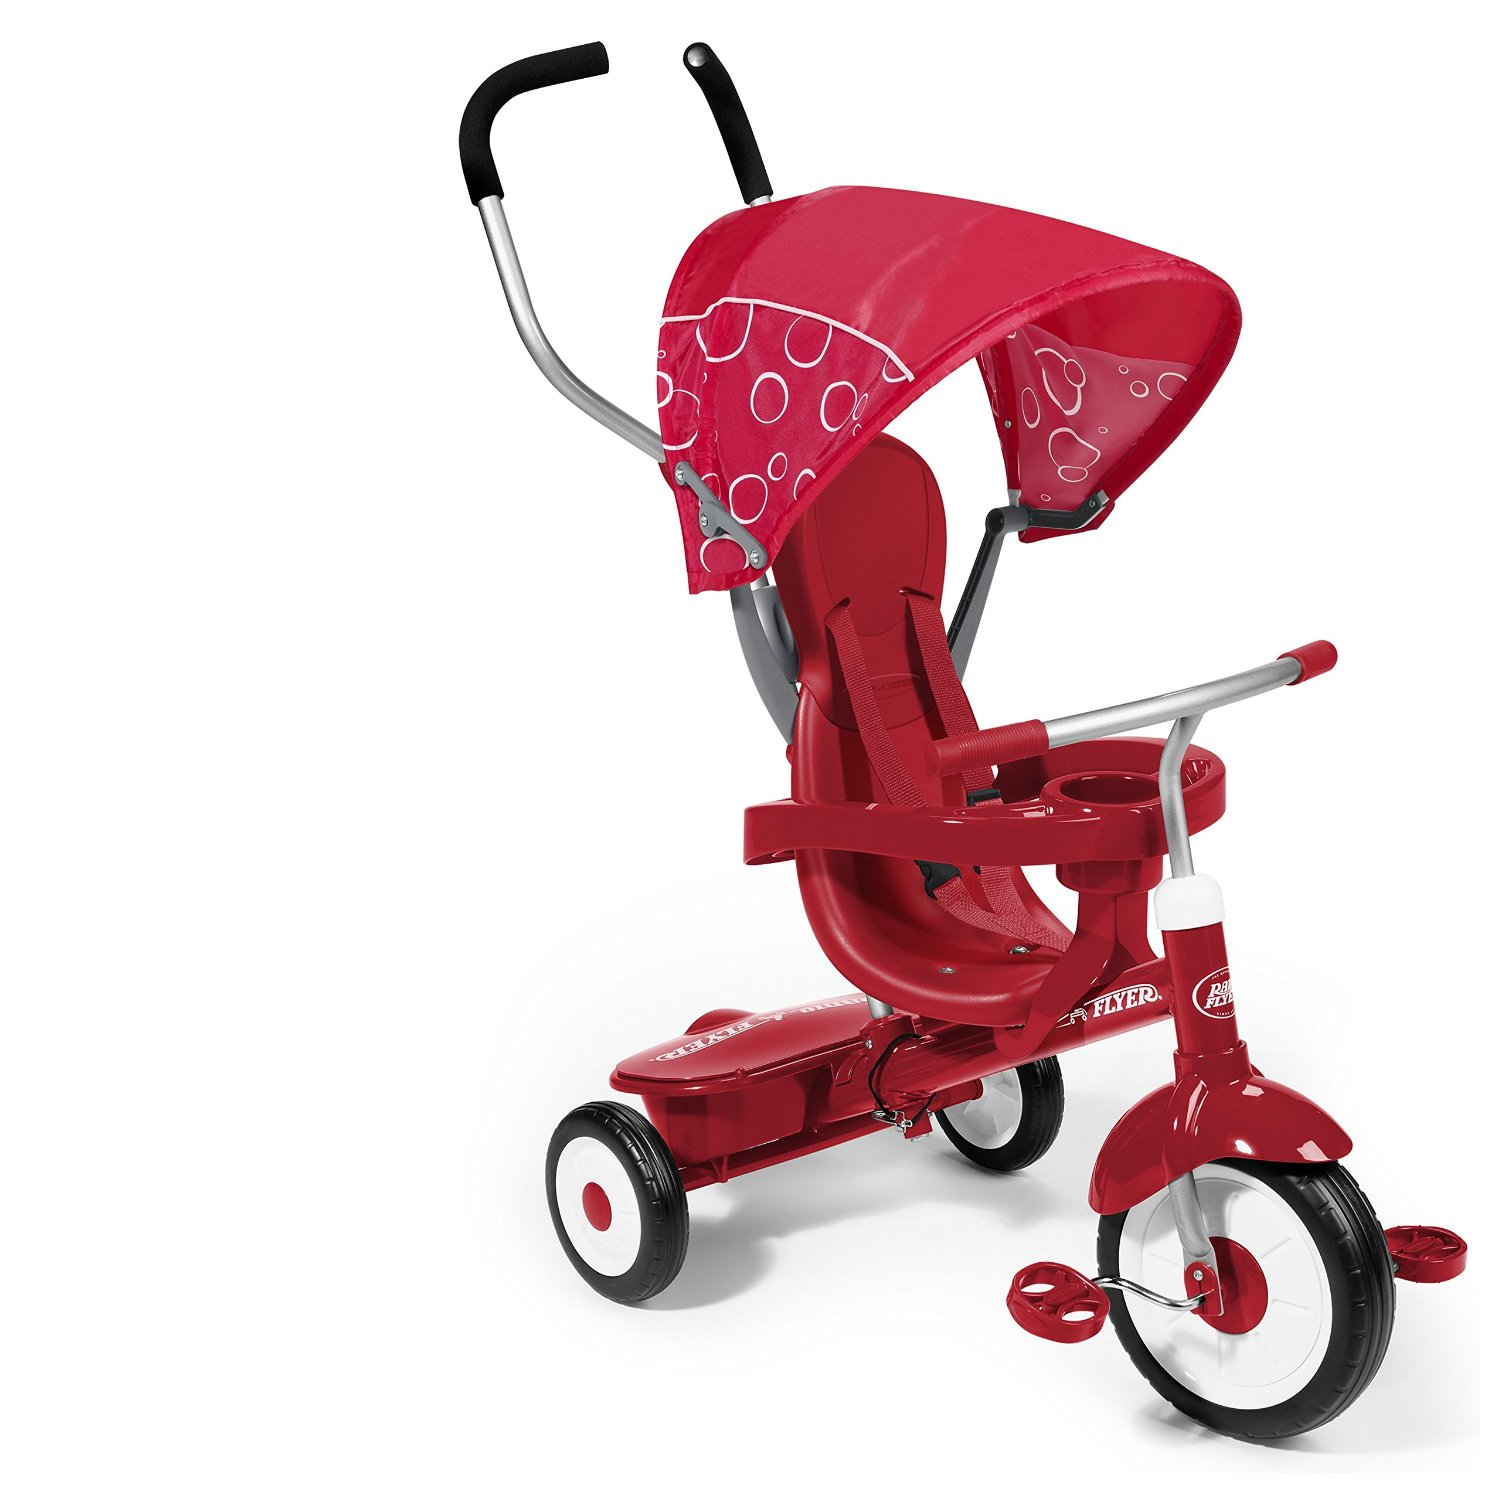 Radio Flyer 4 In 1 Trike Review It S Baby Time